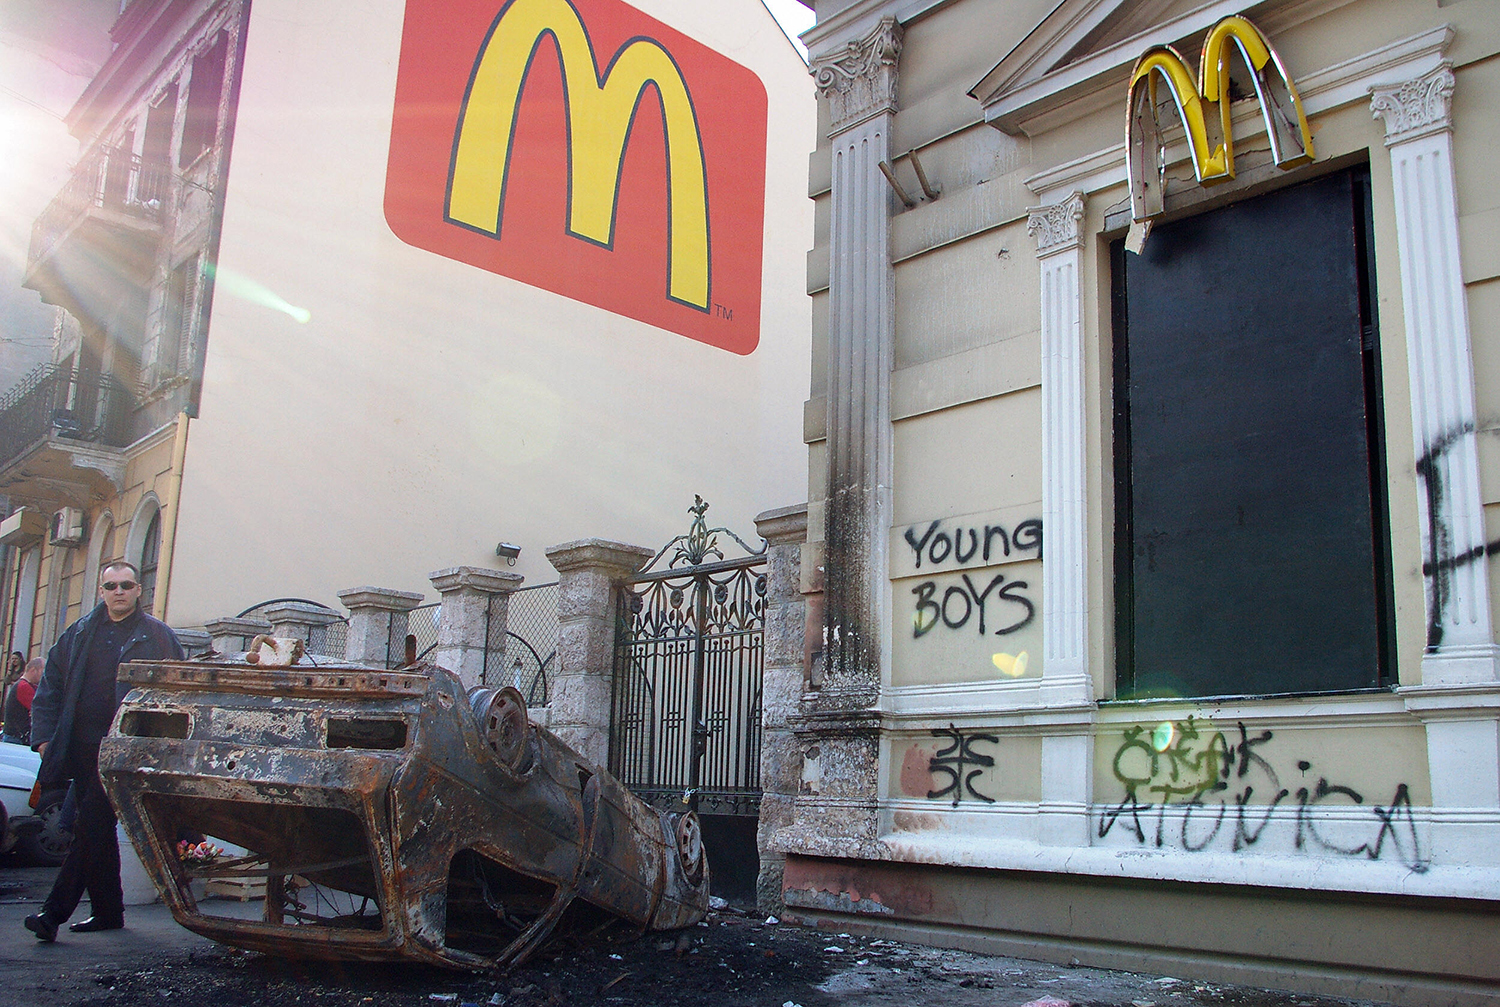 A pedestrian walks by a burned car in front of McDonald's restaurant after unrest in downtown Belgrade on Feb. 22, 2008.